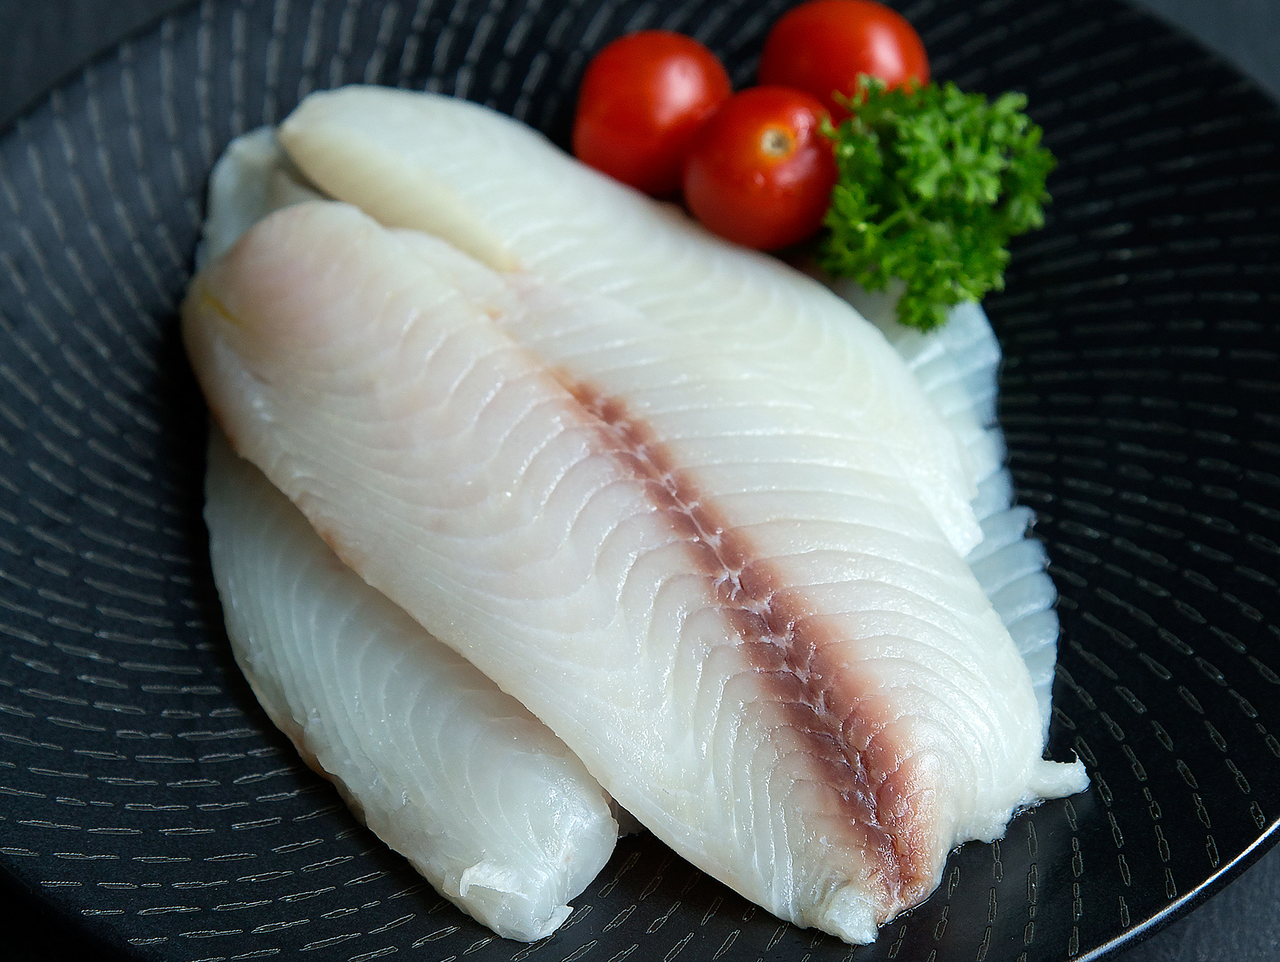 Tilapia Fillet (about 250g)